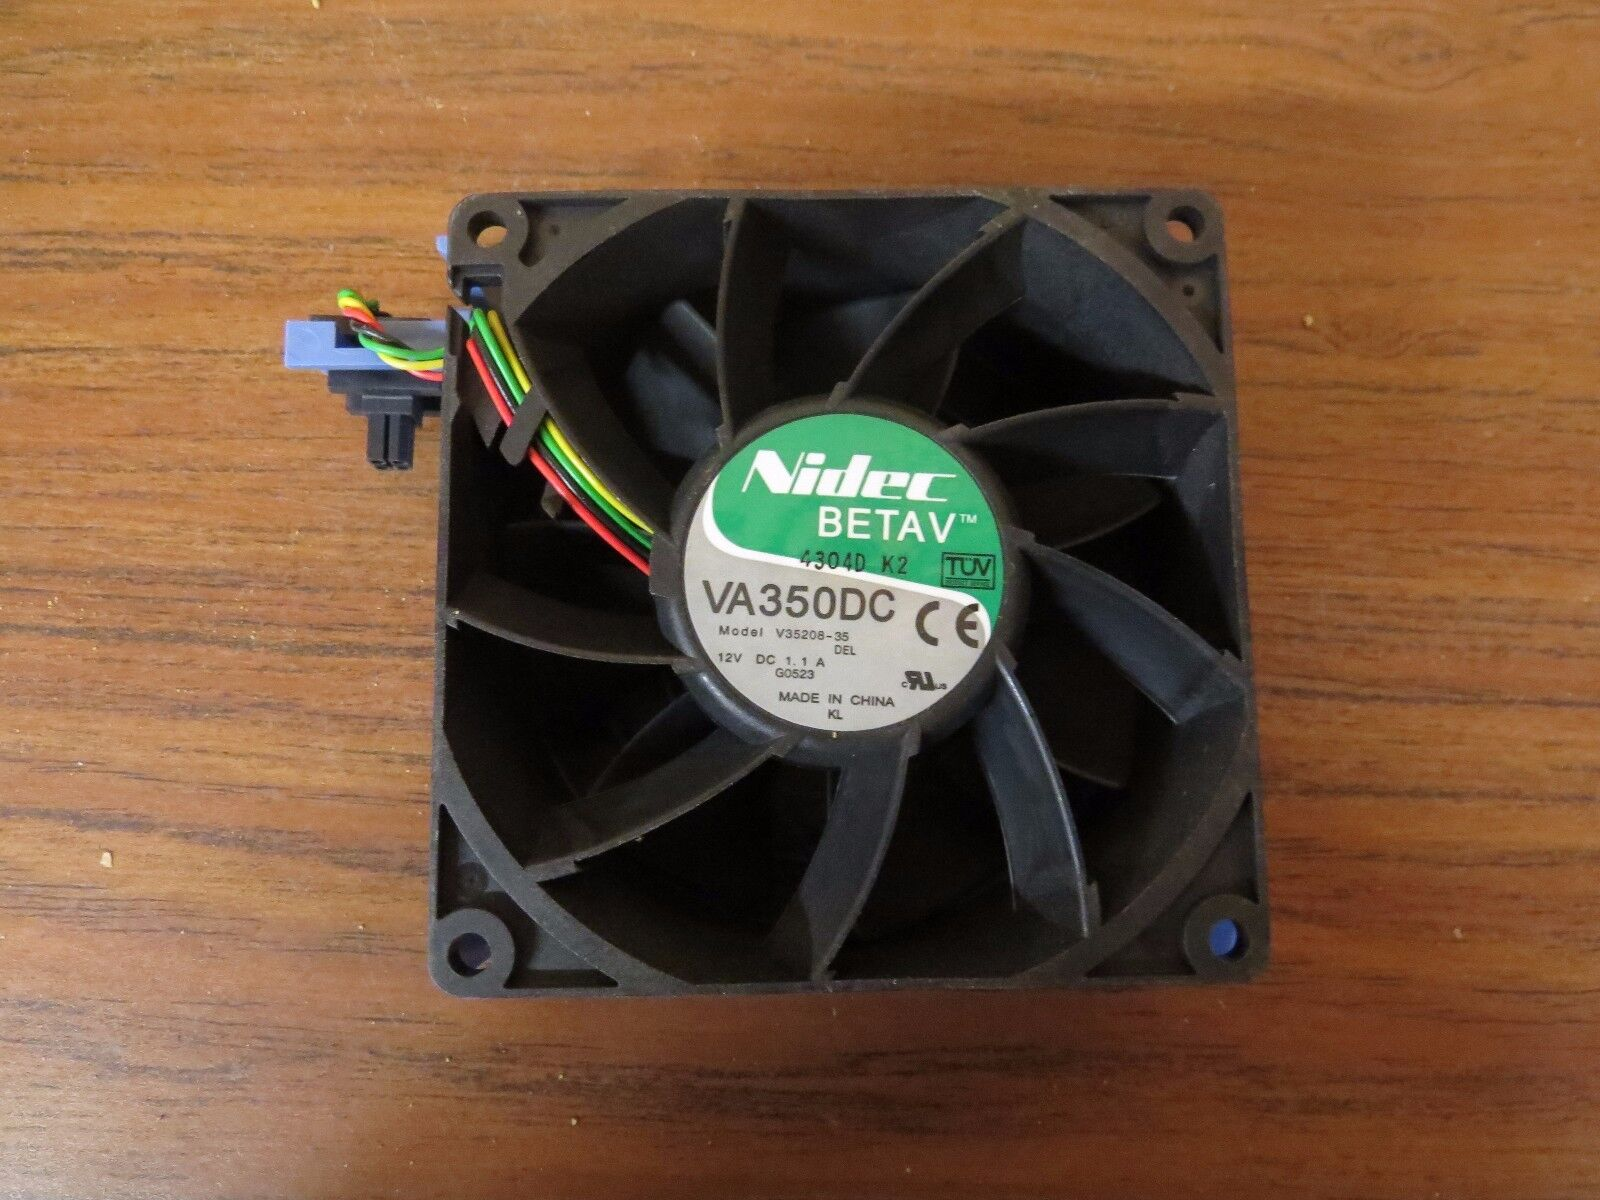 + Nidec Beta V35208-35 Cooling Fan from Tower Computer